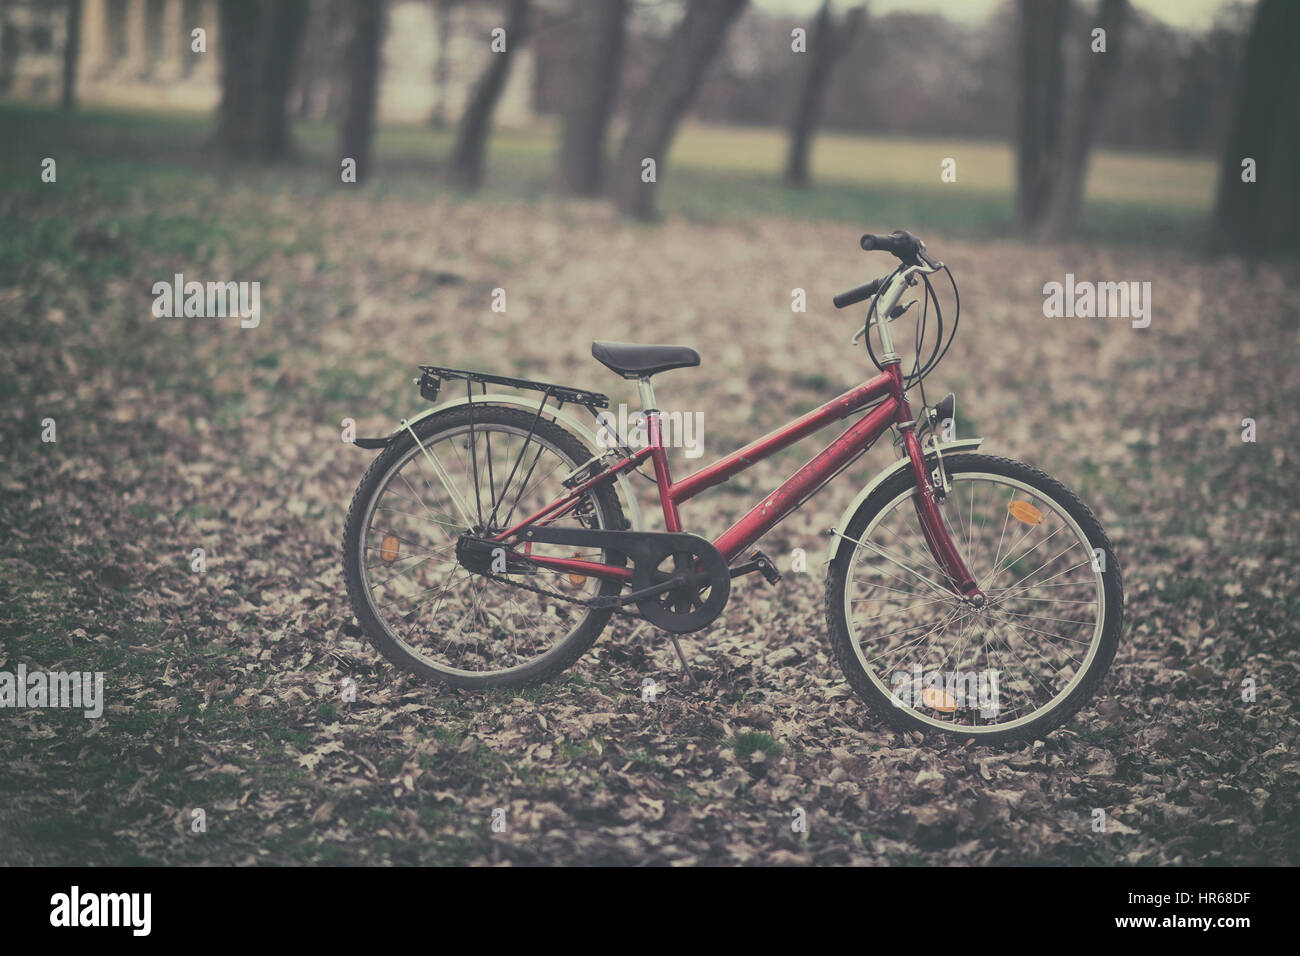 Retro bike - Stock Image